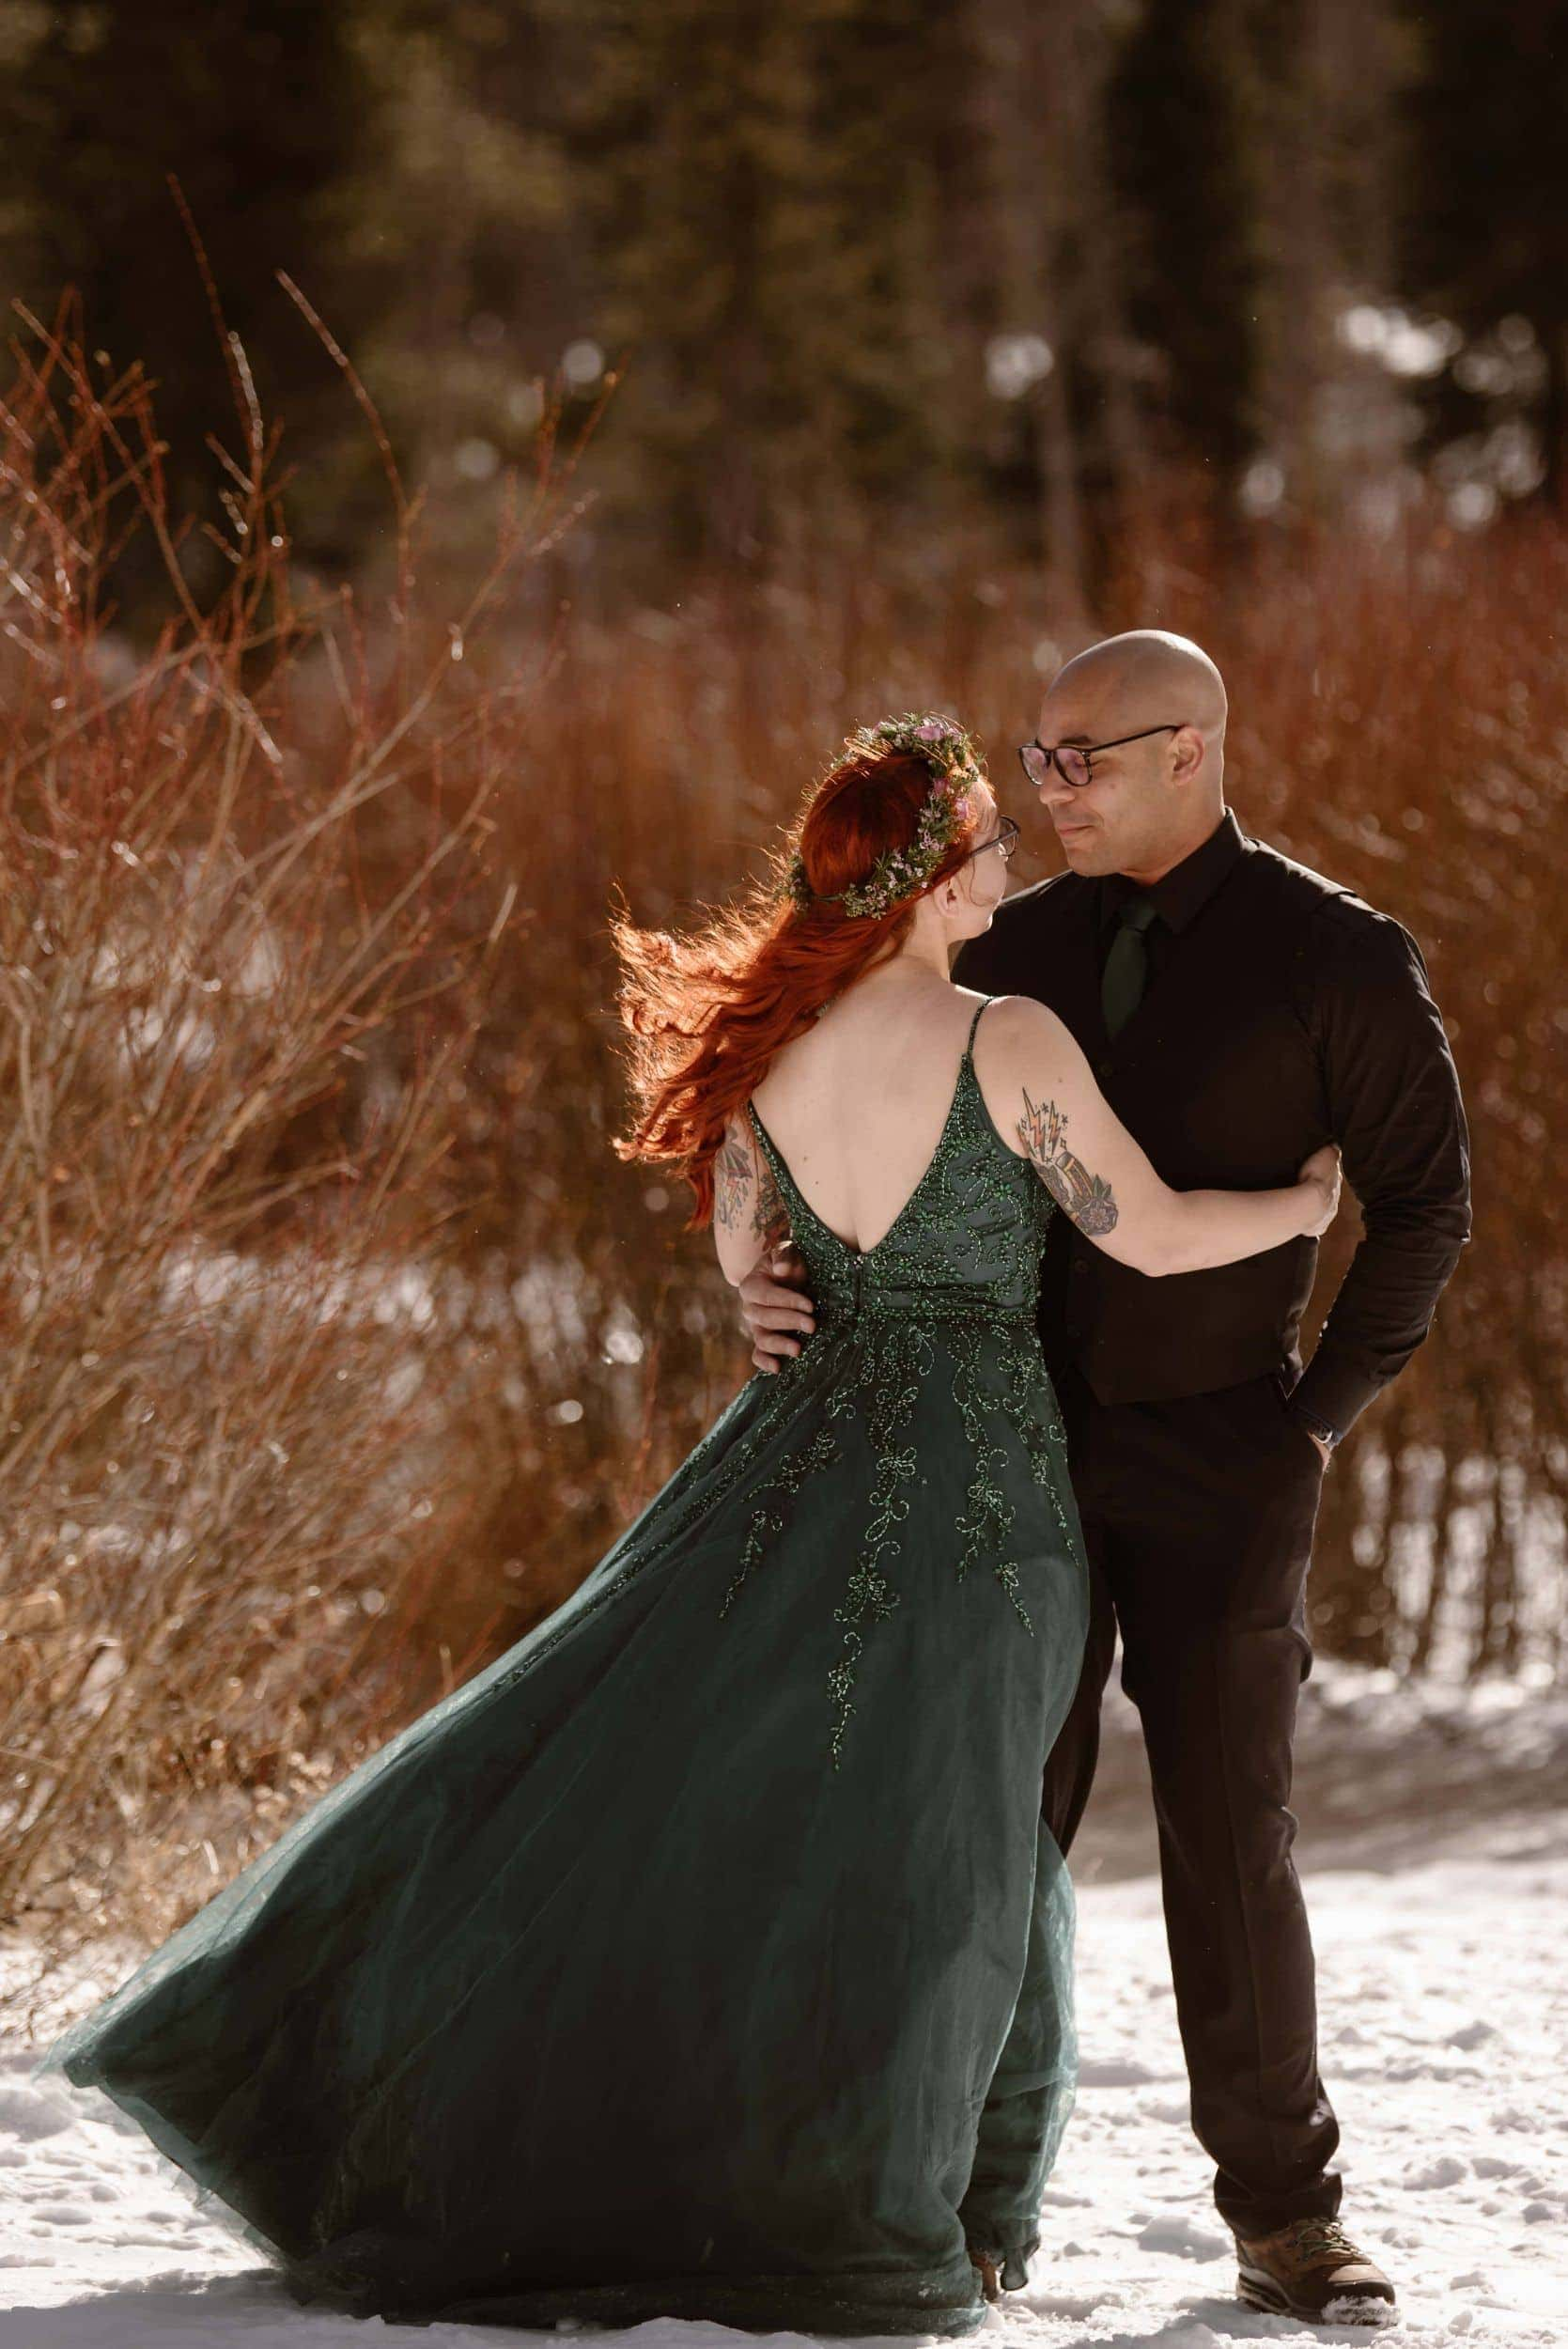 A bride and groom look at each other while standing in snow. The bride is wearing a green dress with a flower crown.